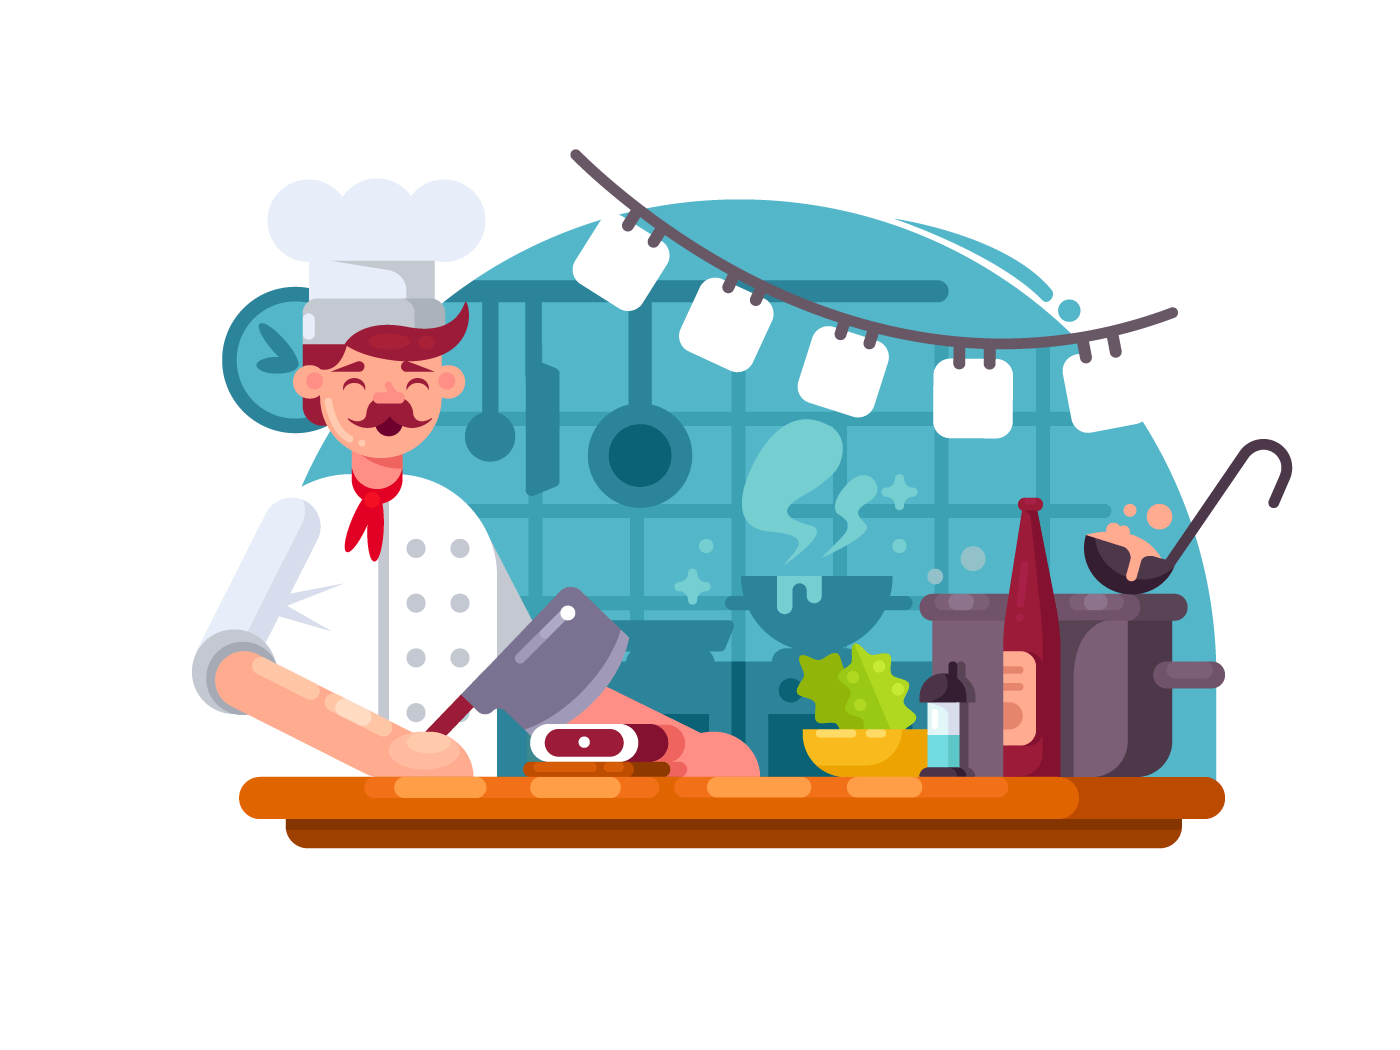 Chefcook in kitchen to prepared meat illustration